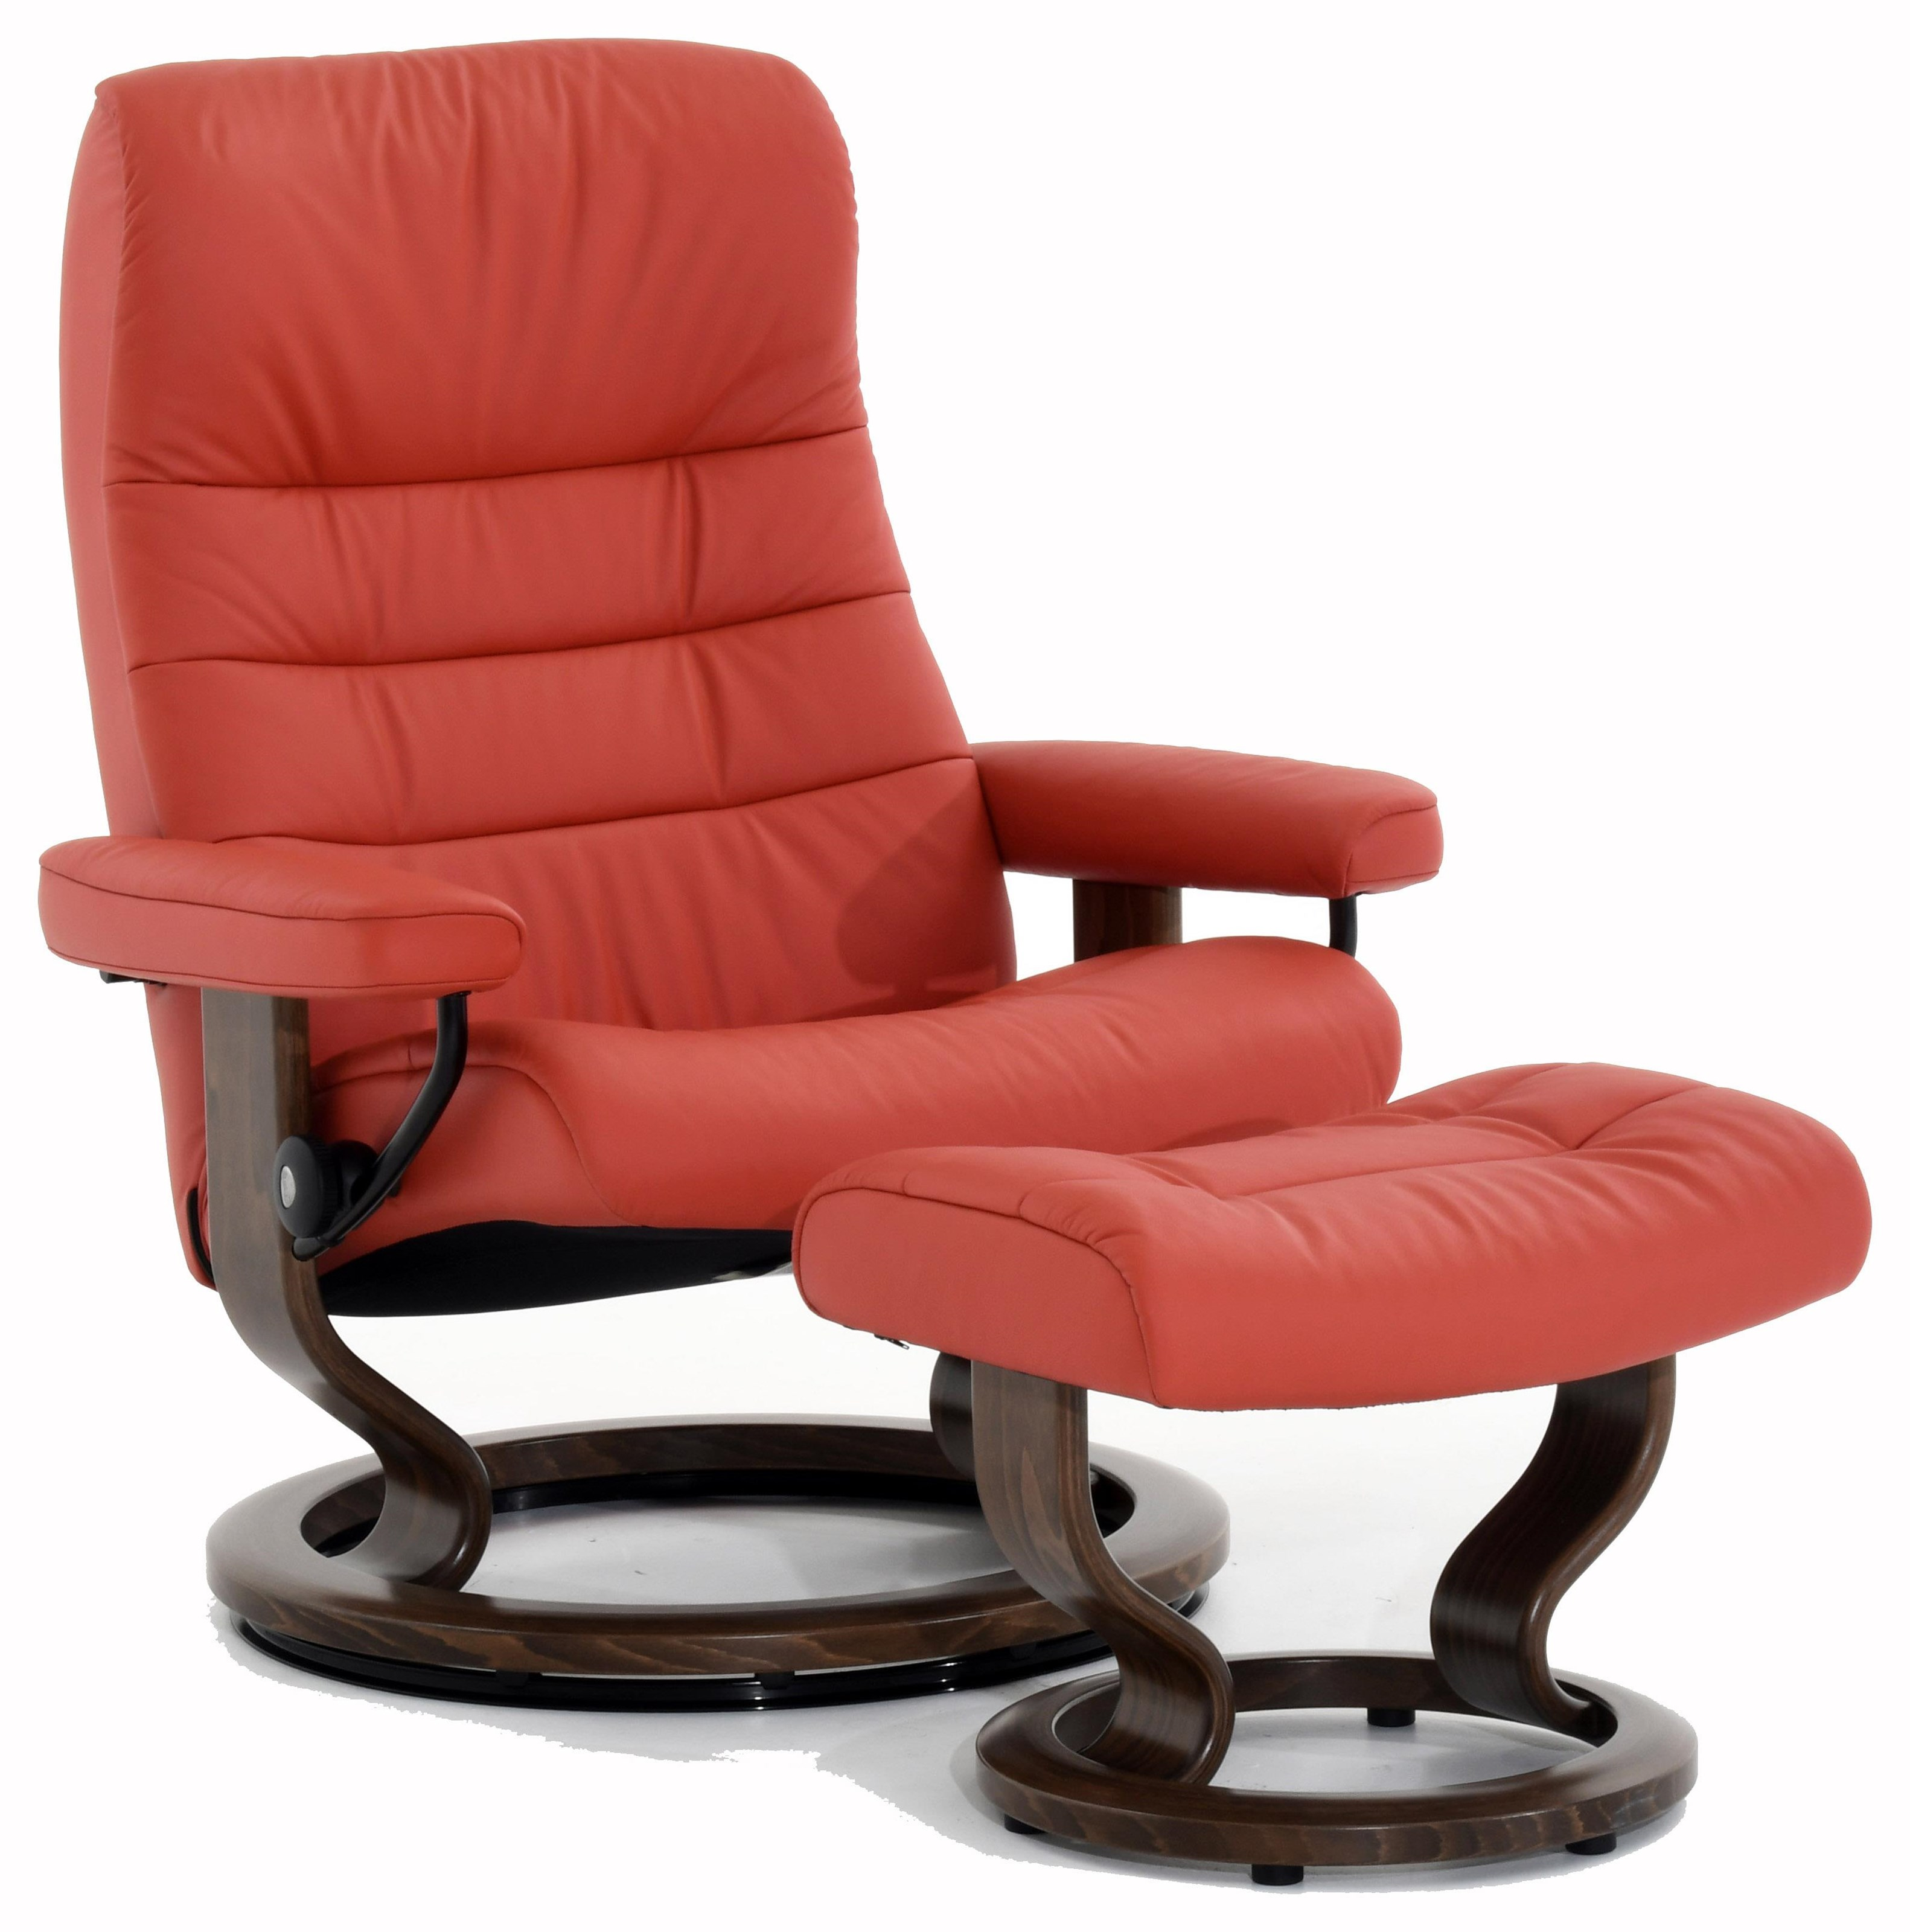 Opal Large Opal Classic Chair by Stressless at Baer's Furniture